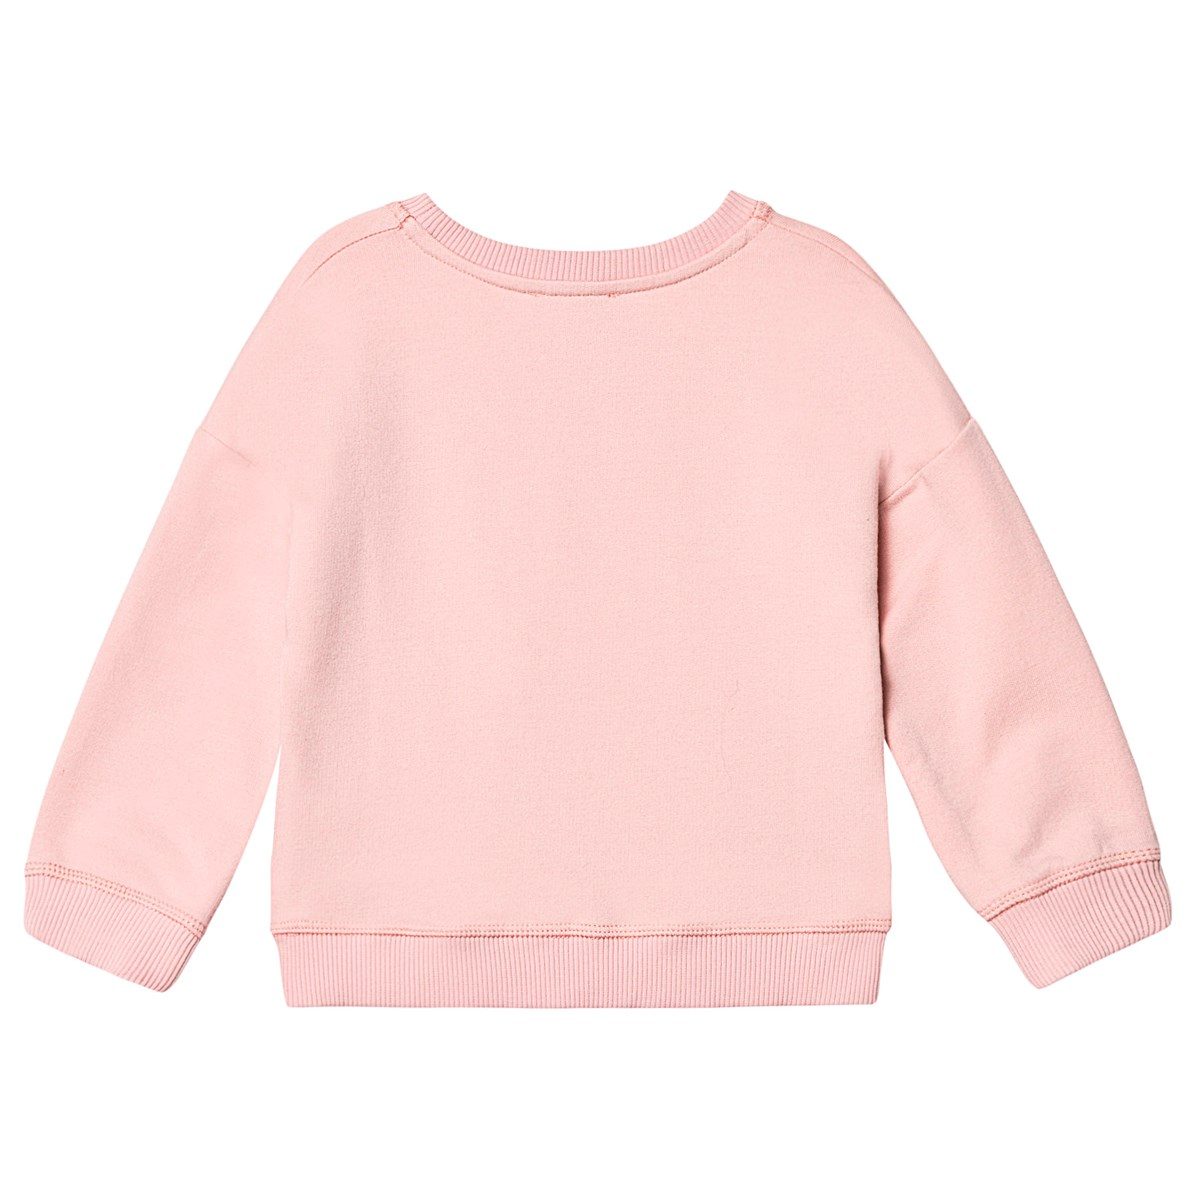 dbf3f8ab Kenzo Kids. Pink Fabric and Embroidered Tiger and Friends Sweatshirt